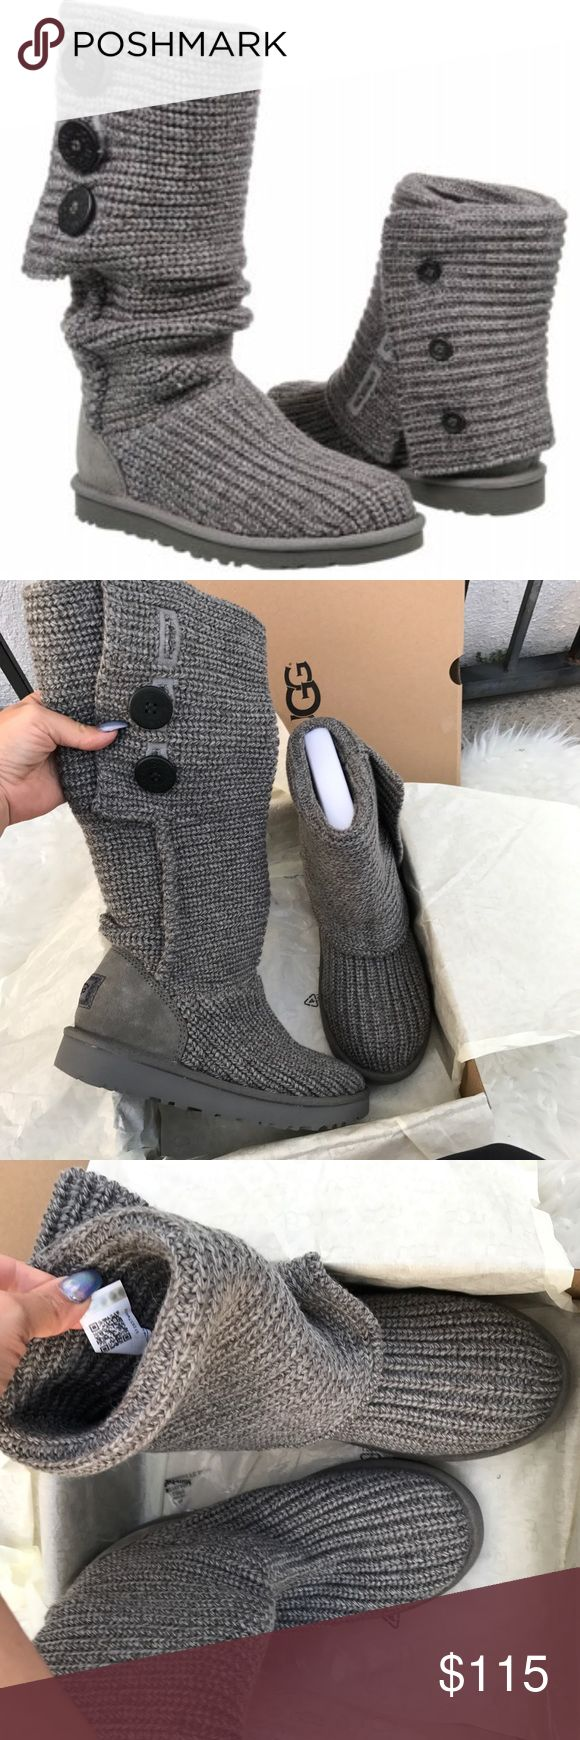 UGG AUTHENTIC CARDY GREY BOOTS SZ 8 new UGG AUTHENTIC CARDY GREY BOOTS SZ 8 new 100% authentic. QR READER SCANNABLE TAG ! New in box ! Manufactured this year , improved style and newest Ugg packaging . Itemcloset#cinsie UGG Shoes